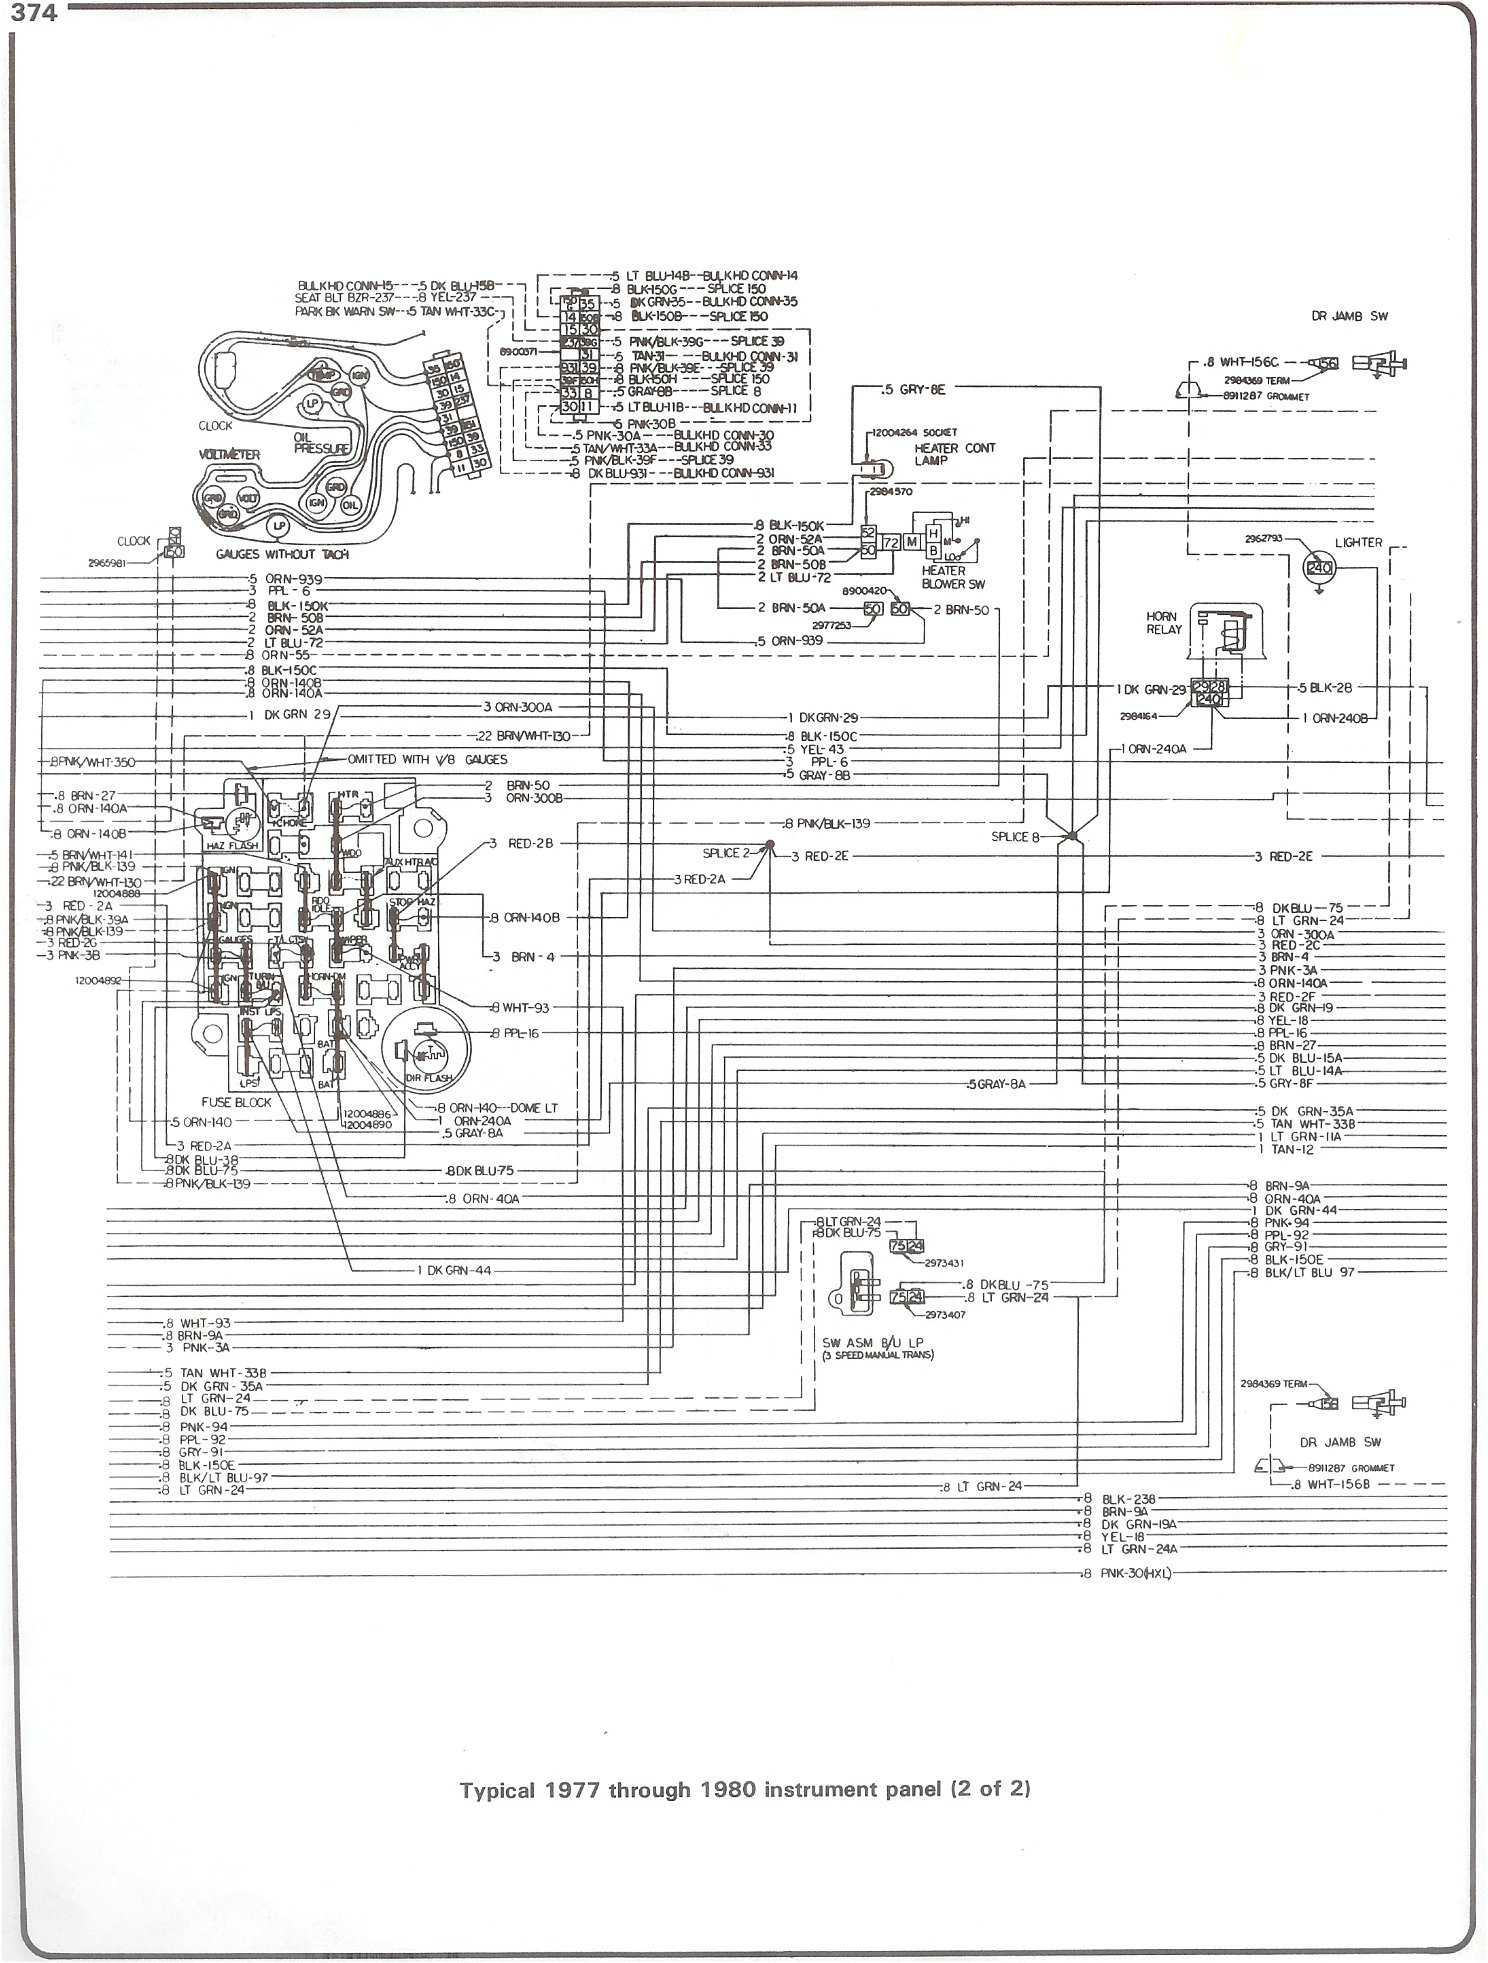 1977 Chevy 350 Engine Parts Diagram Automotive Wiring Images Gallery